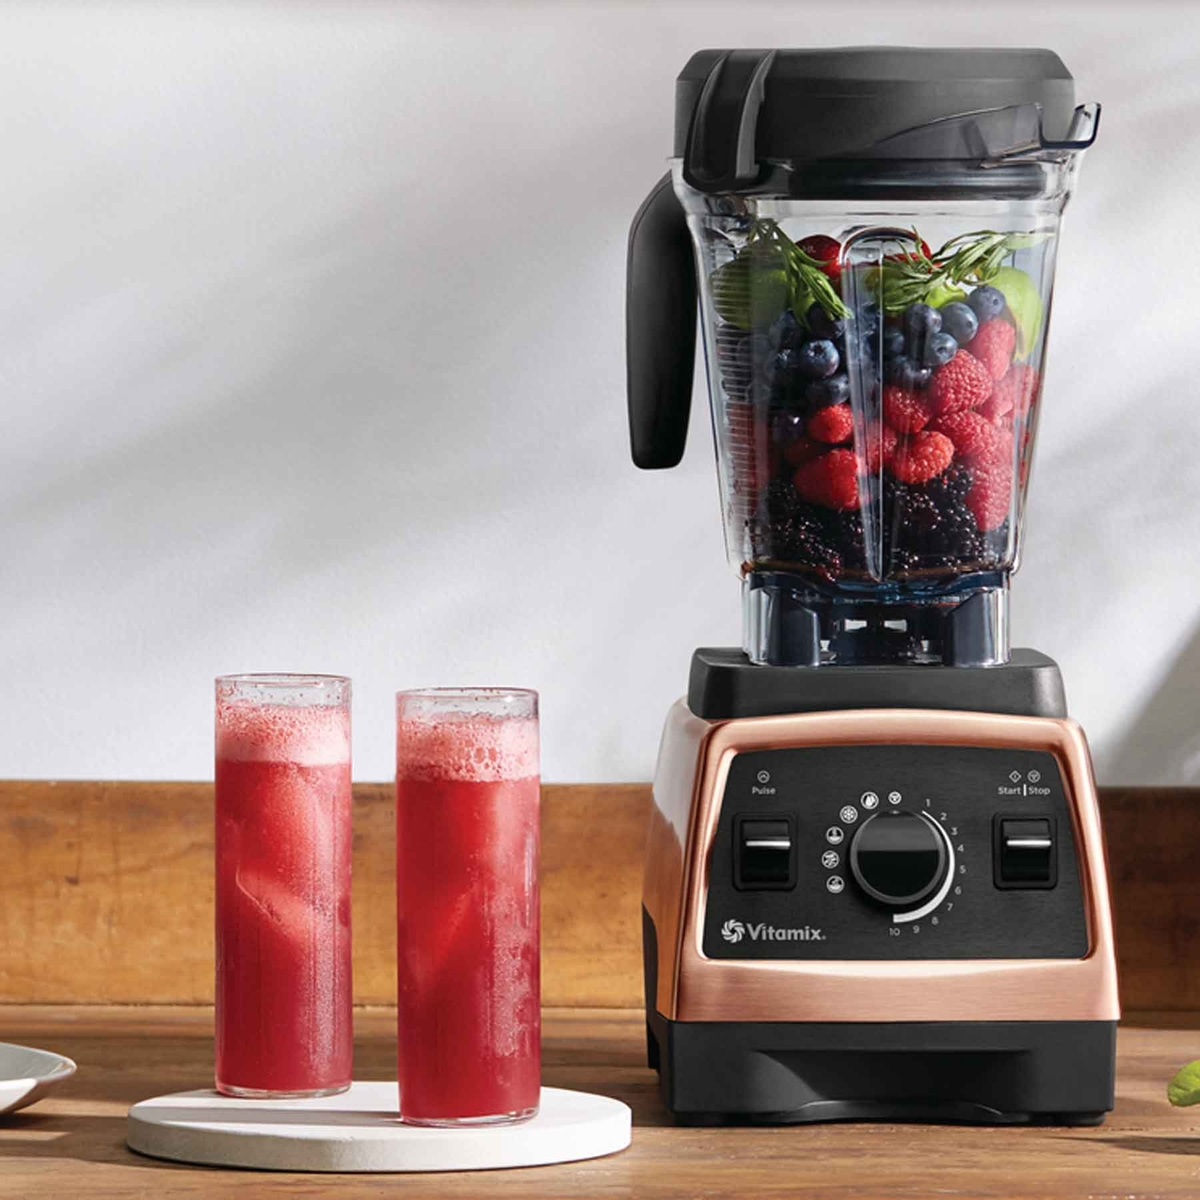 vitamix blender series 750 heritage copper - Vitamix 750